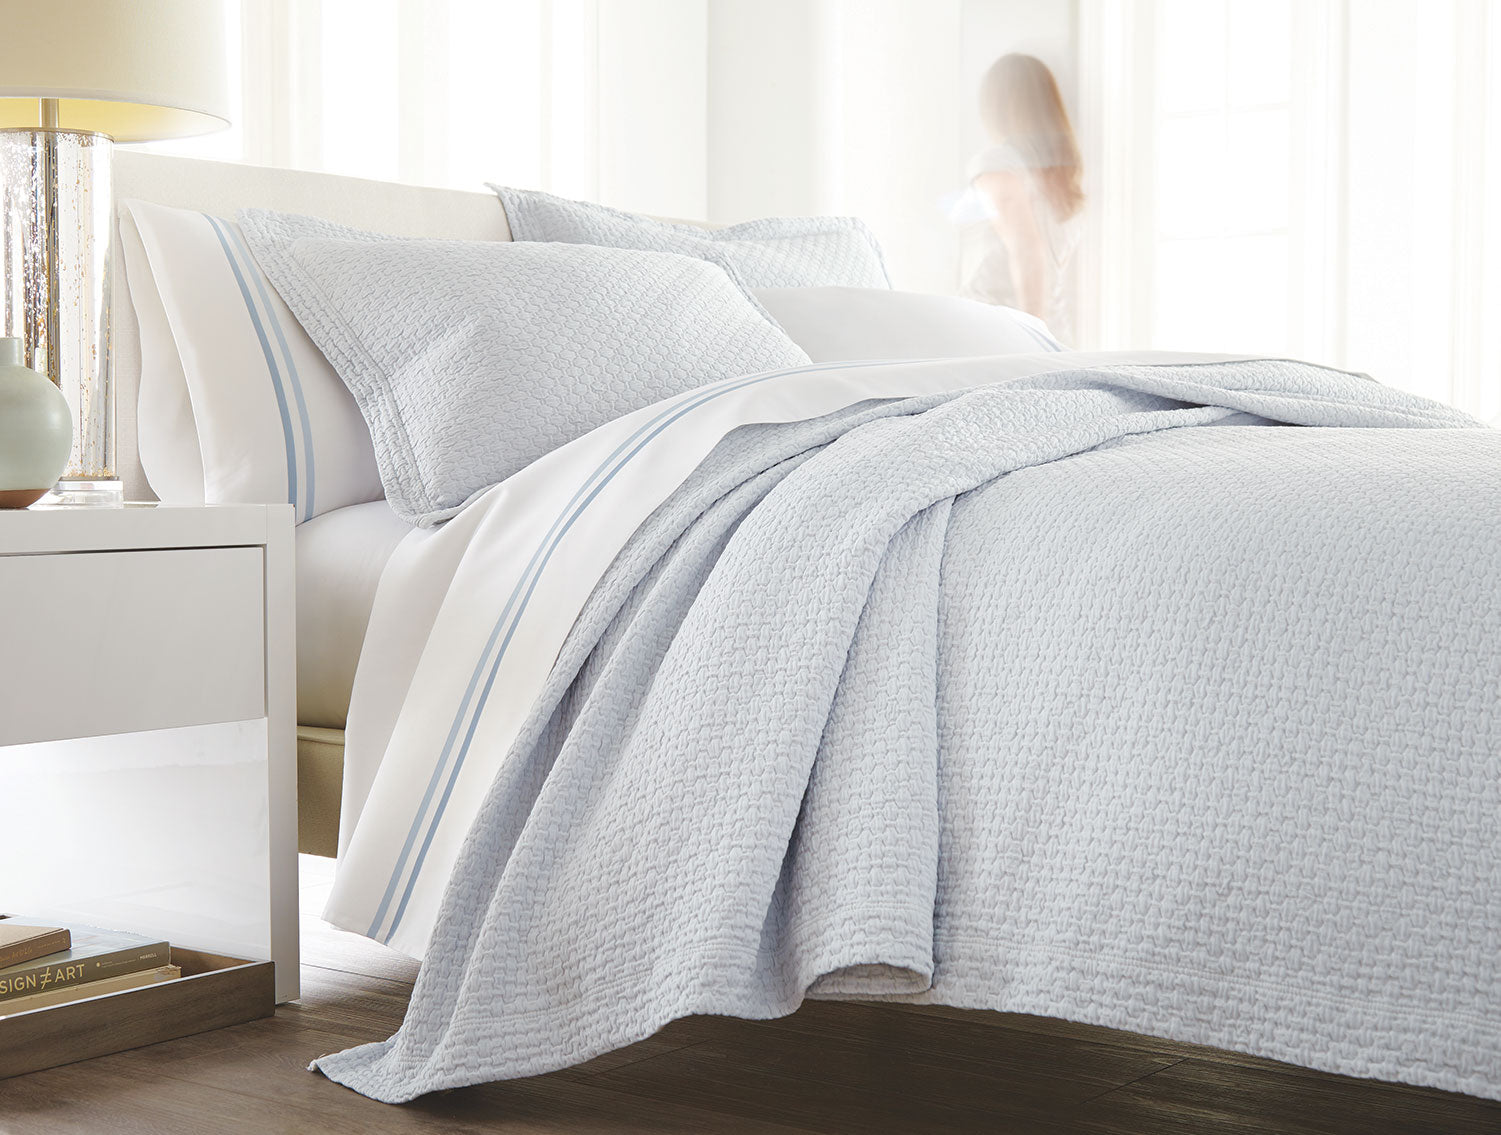 Barely Blue Juliet coverlet on bed with Duo striped sheets